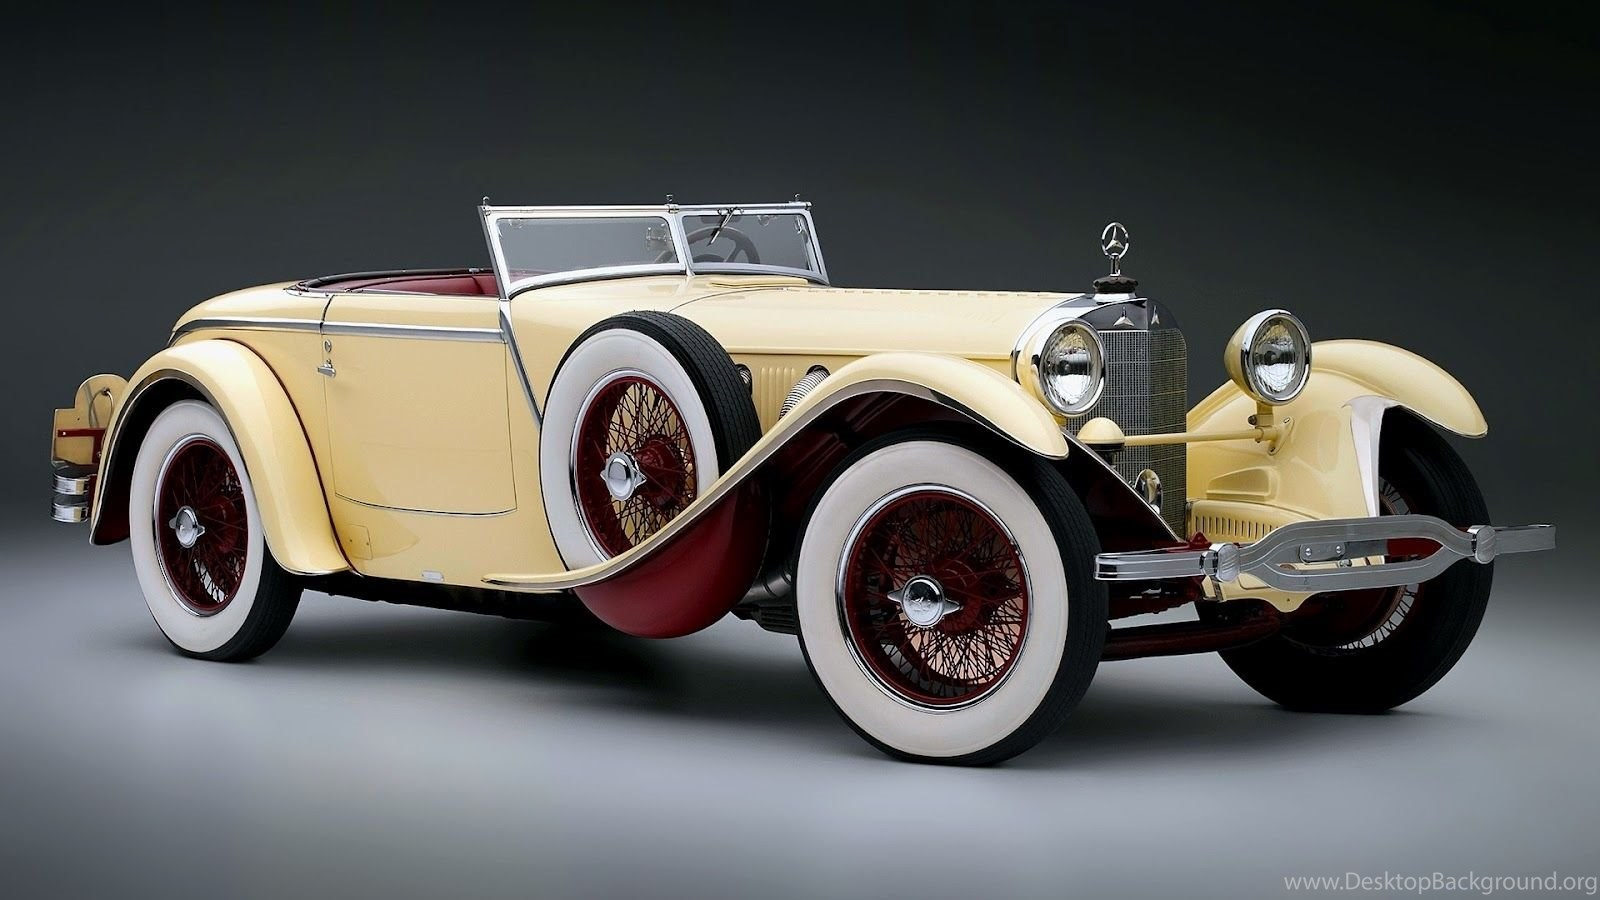 Old Car Images Hd Wallpapers And Pictures Desktop Background